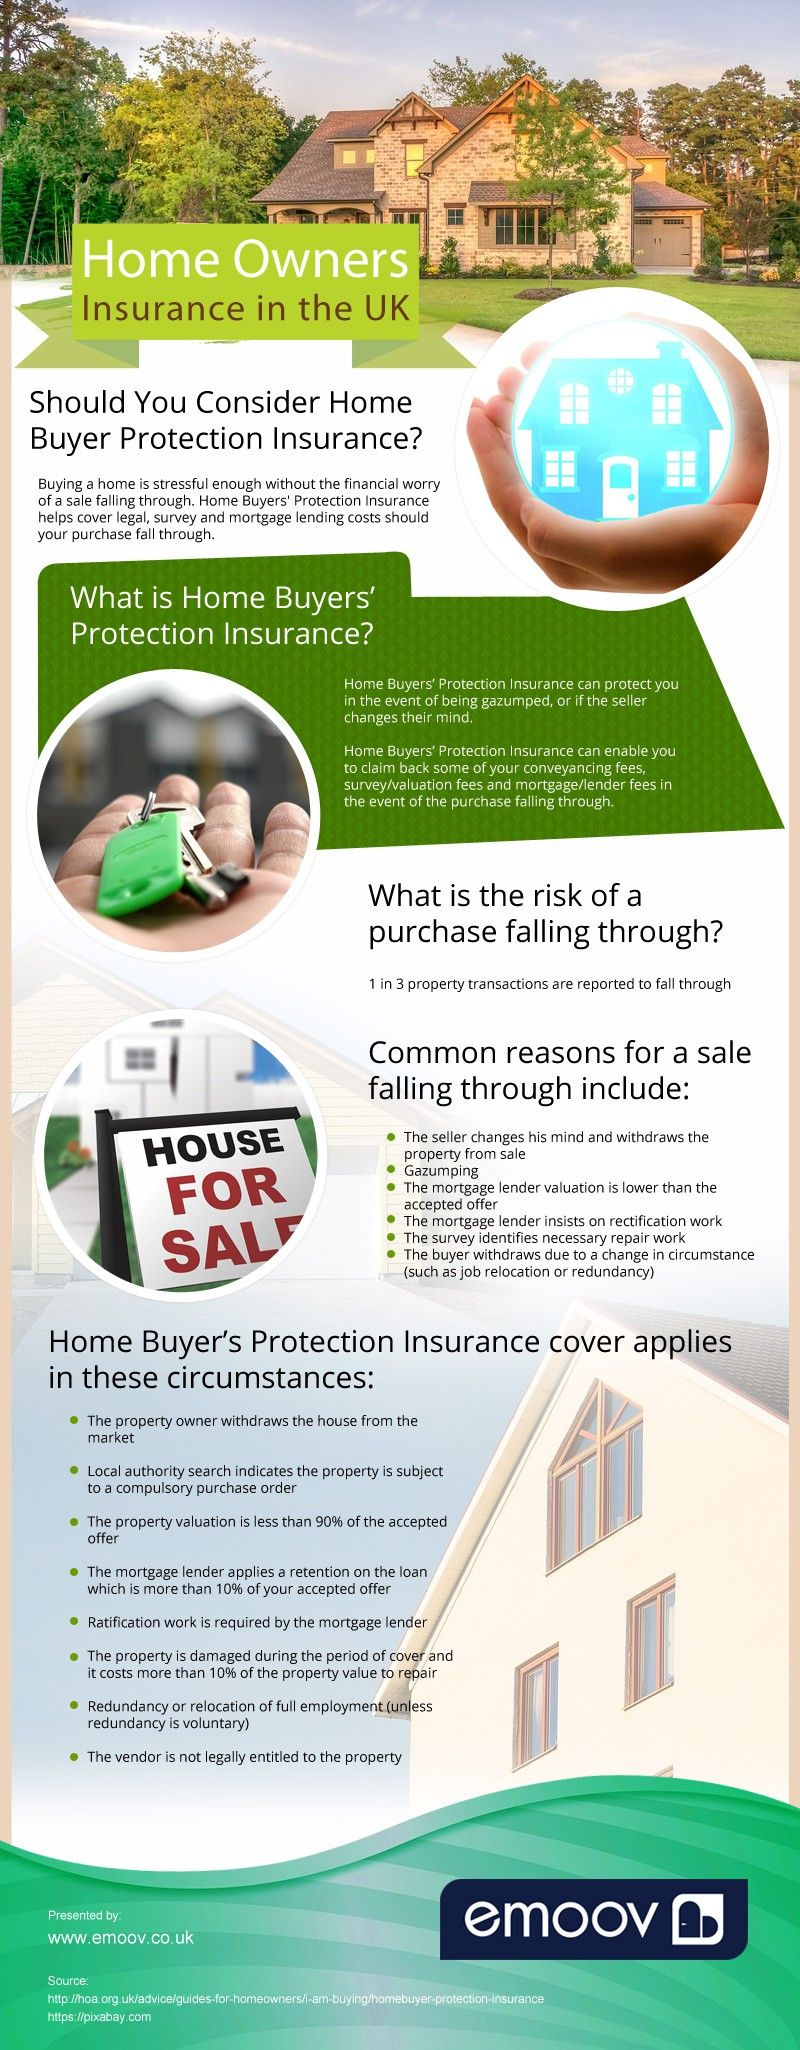 Home Owners Insurance in the UK [infographic]